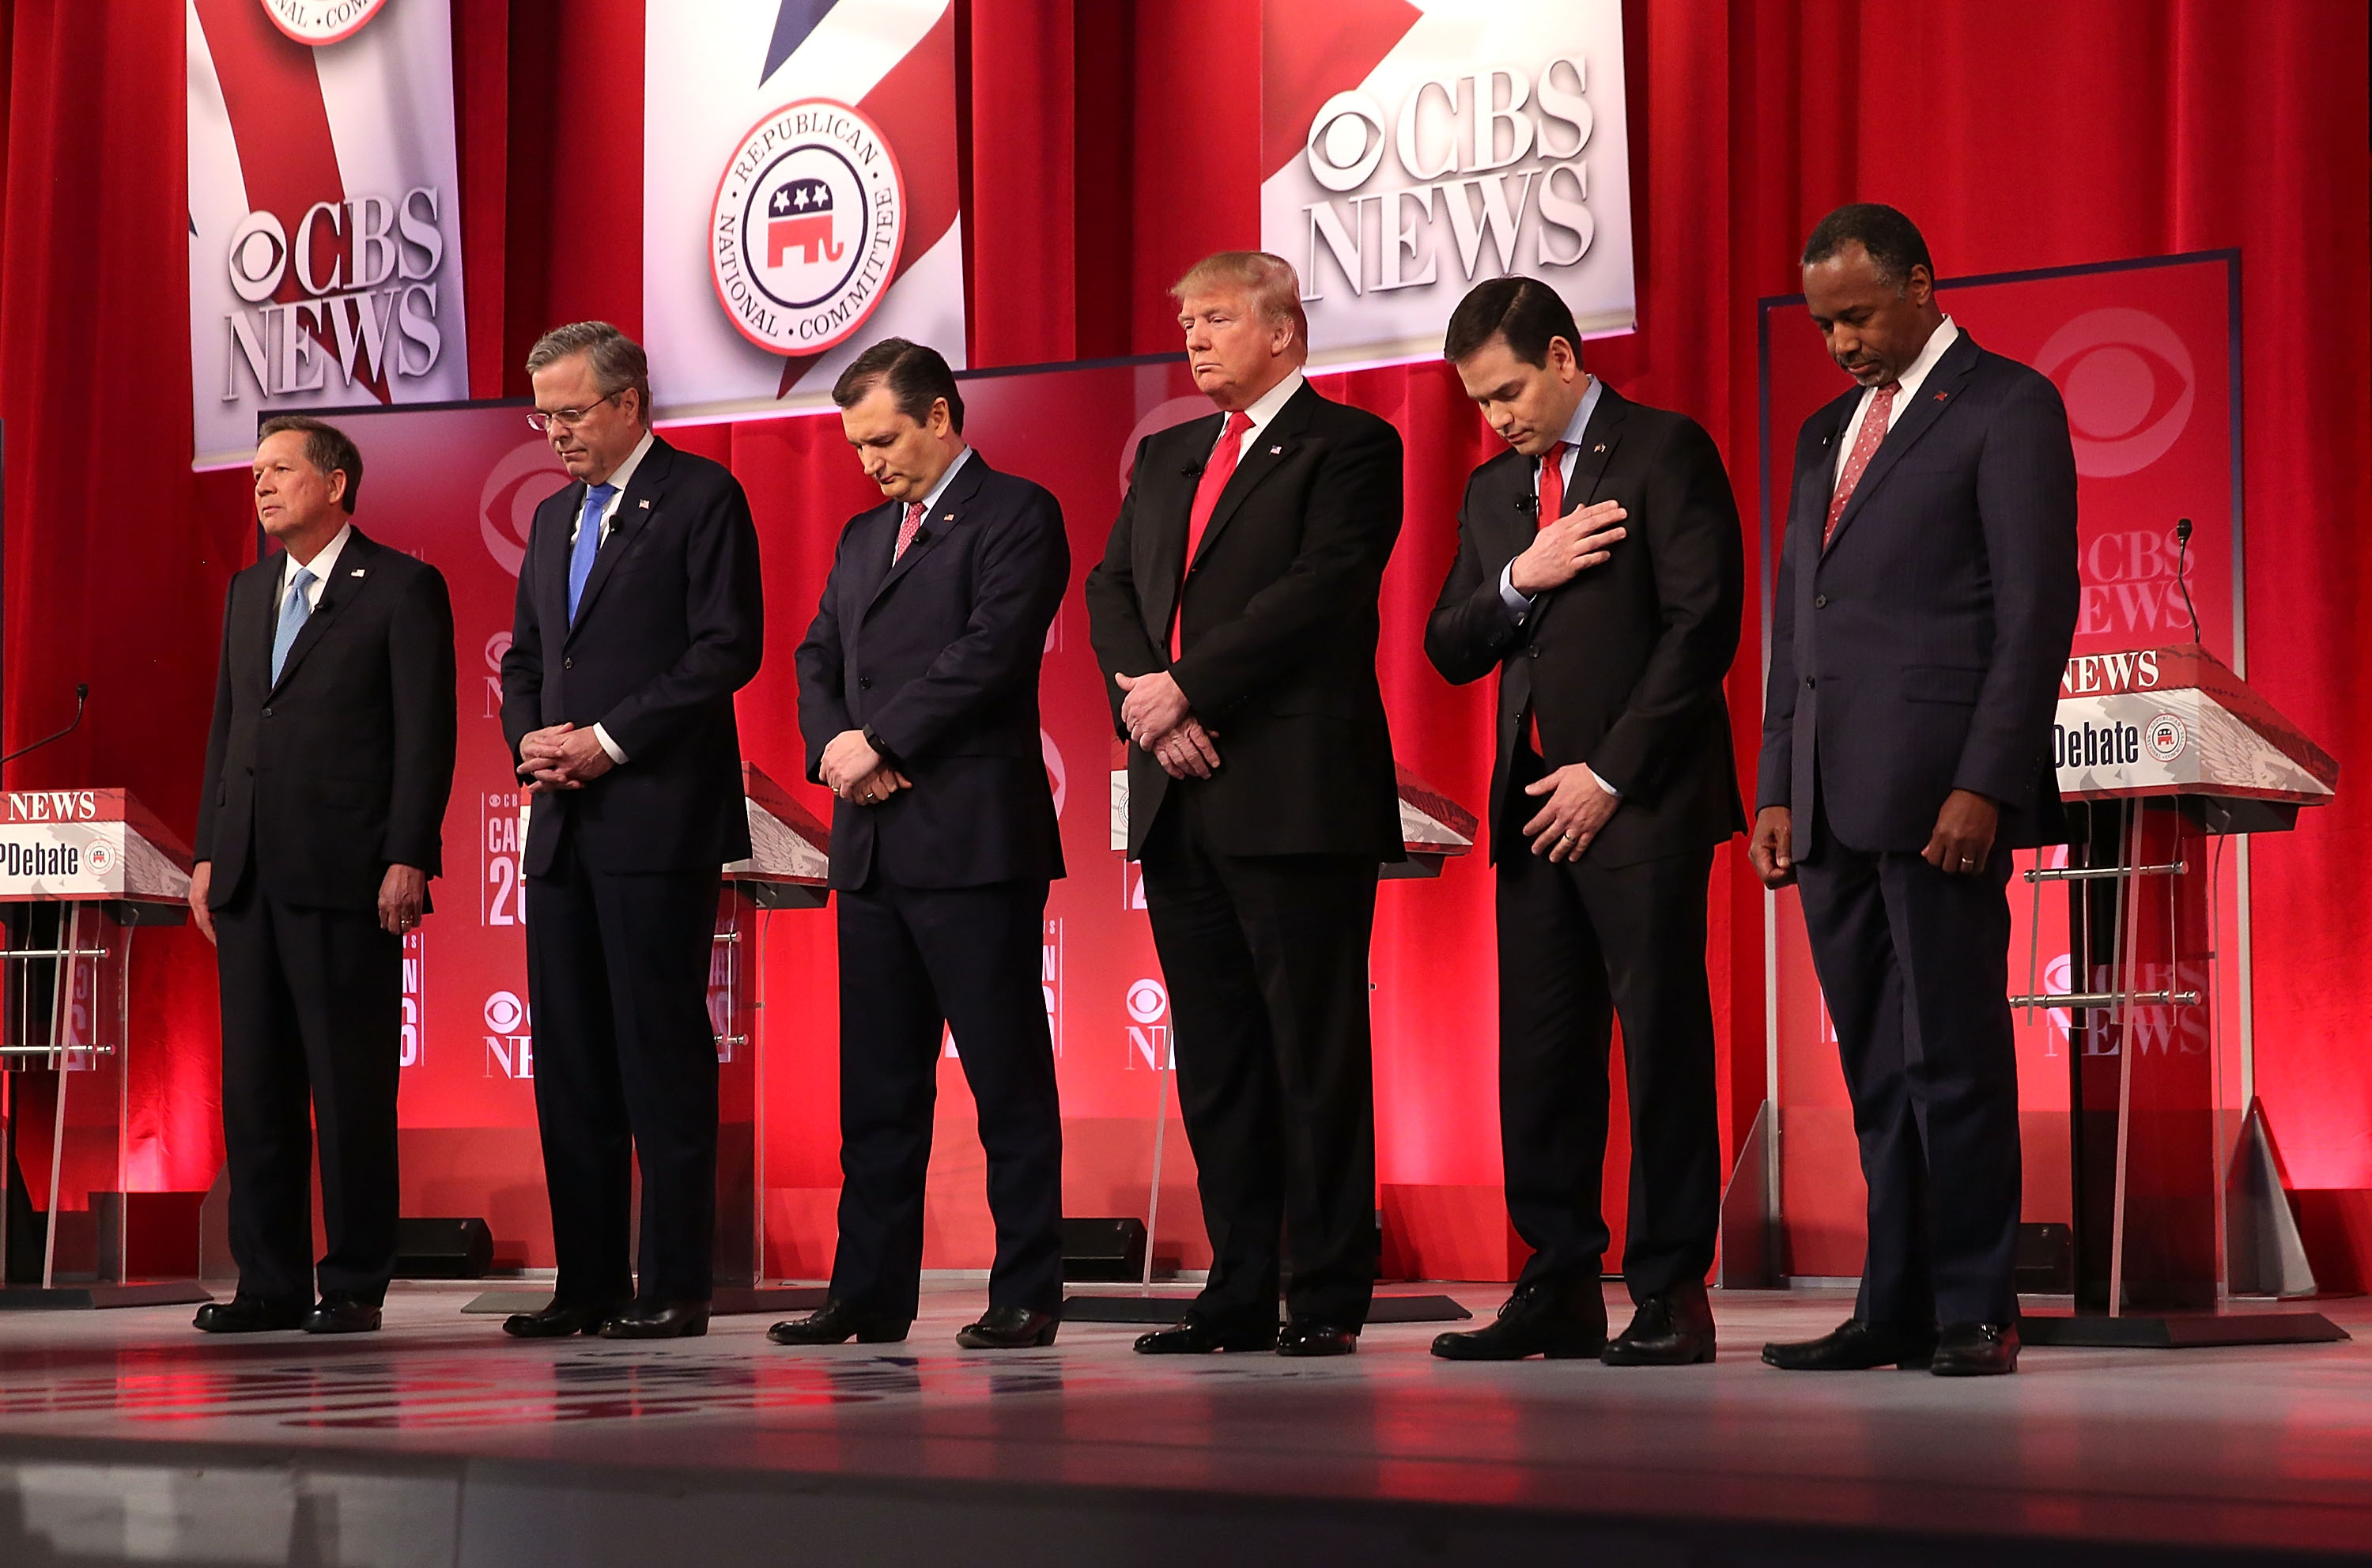 The Republican presidential candidates observe a moment of silence for Supreme Court Justice Antonin Scalia, who died the same day as the CBS debate on Feb. 13, 2016. (Getty)